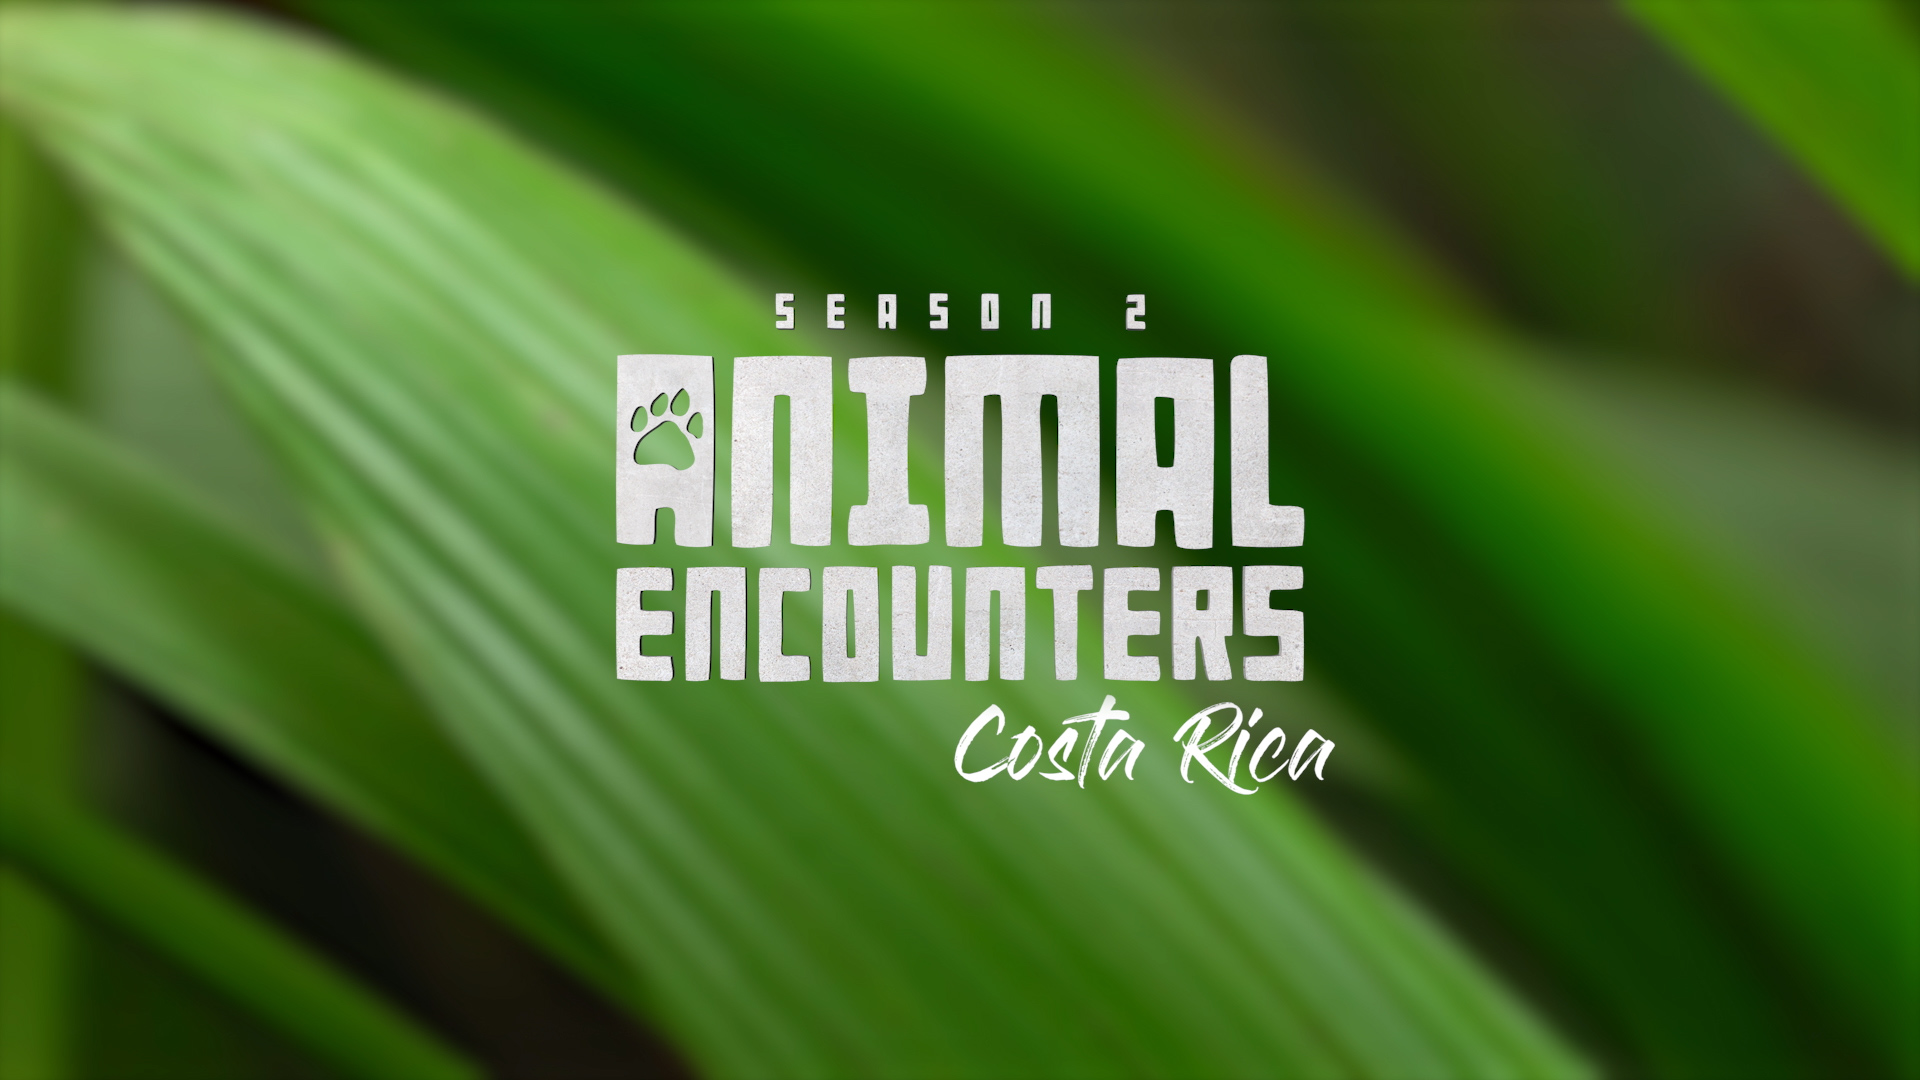 Animal Encounters Season 2 - Costa Rica